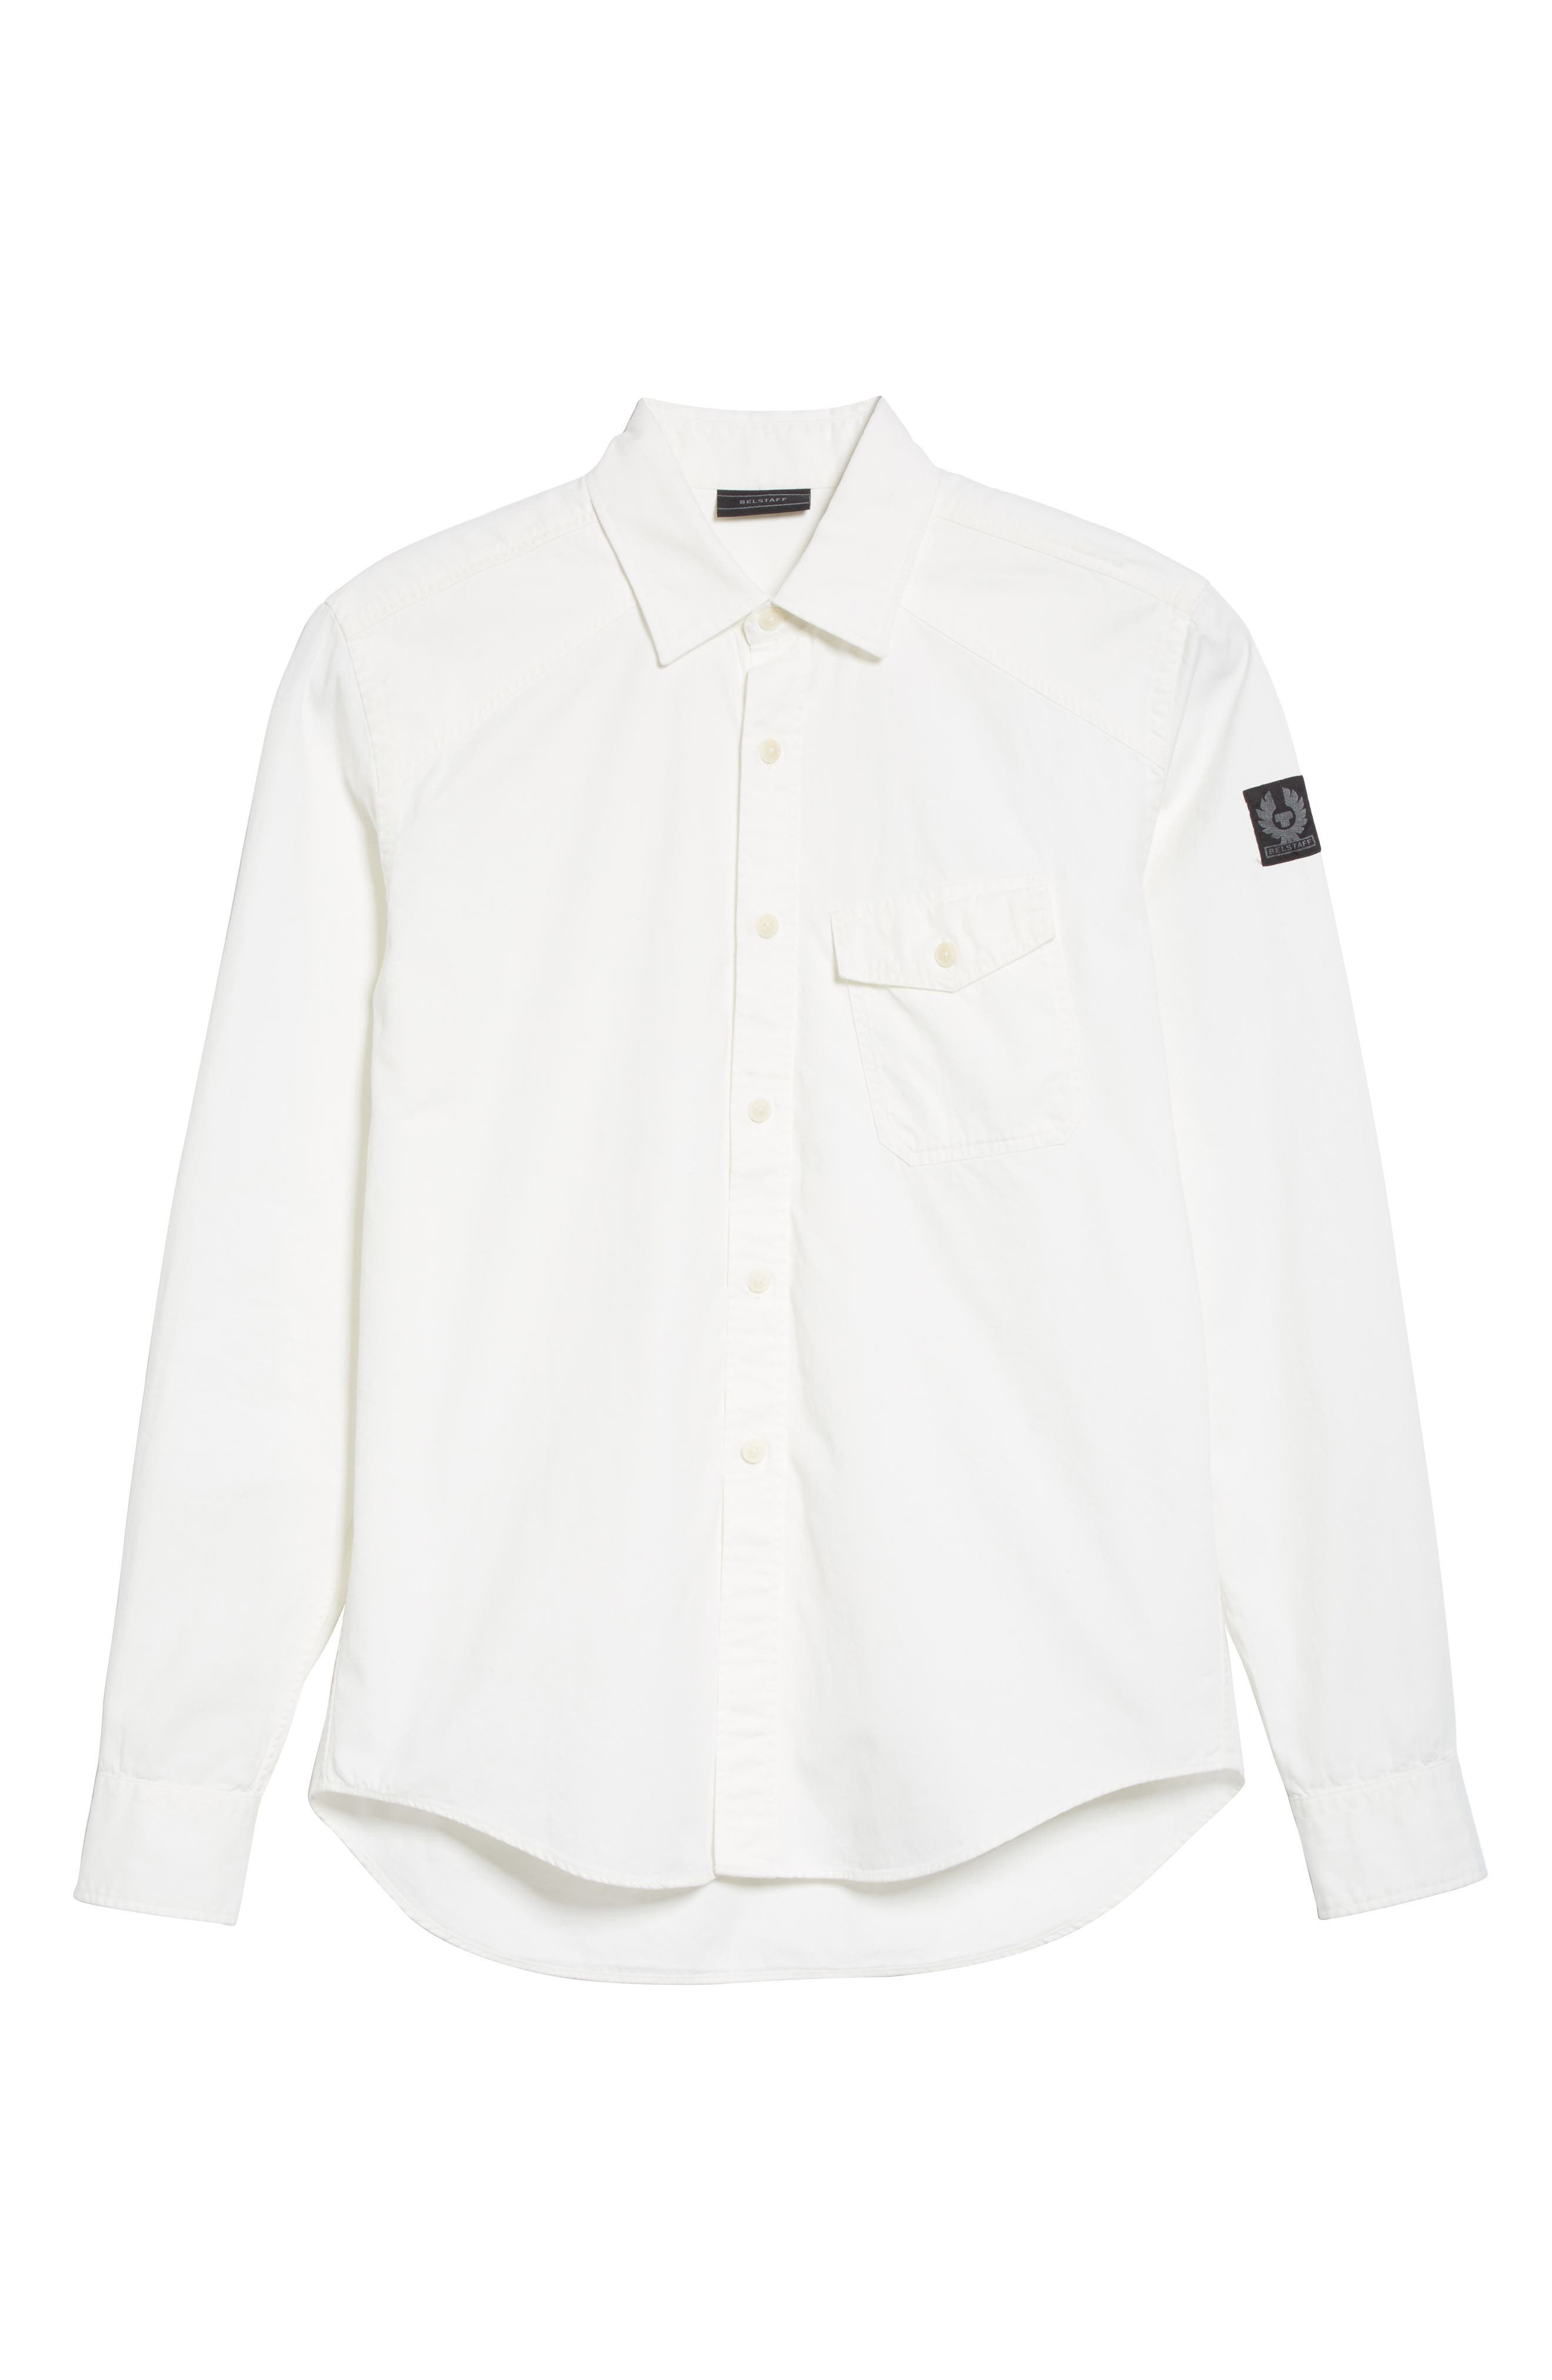 Steadway Extra Slim Fit Sport Shirt,                             Alternate thumbnail 27, color,